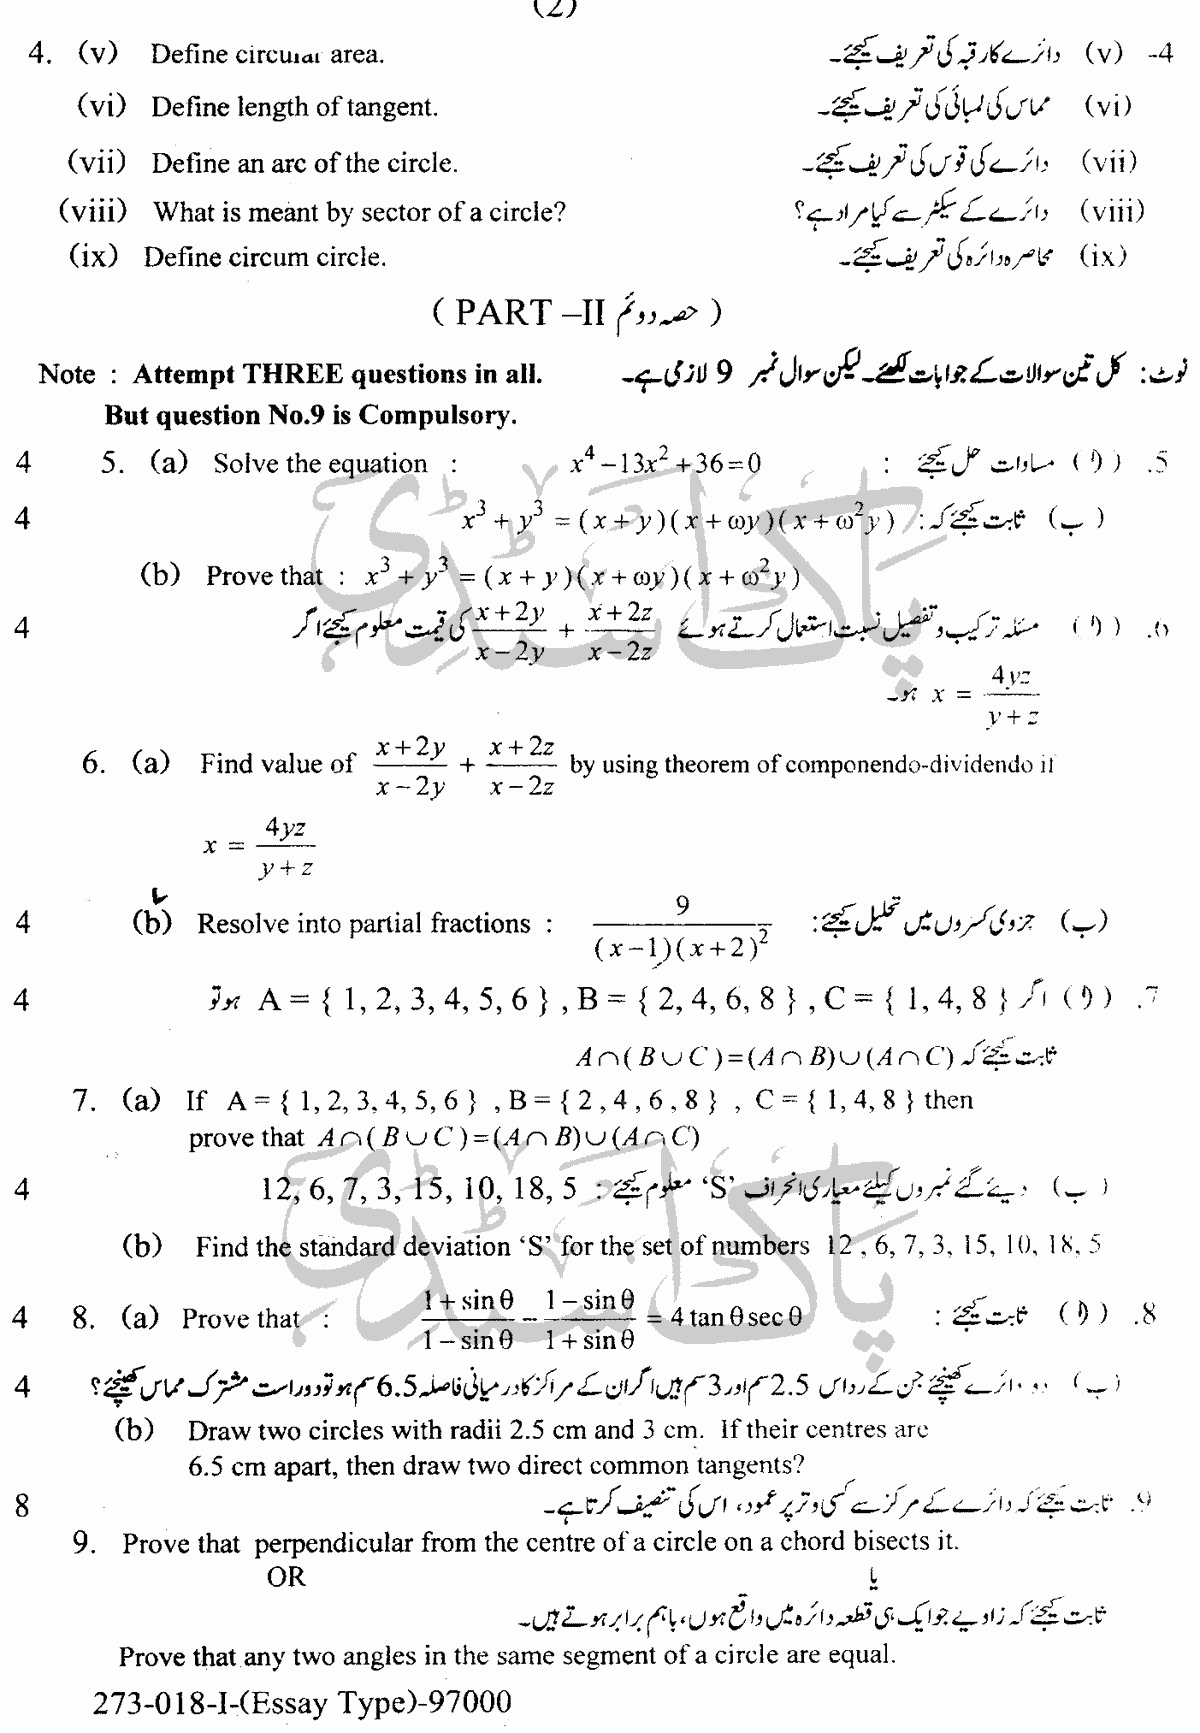 Bise Lahore Board 10th Class Math Past paper 2018 | Pakstudy